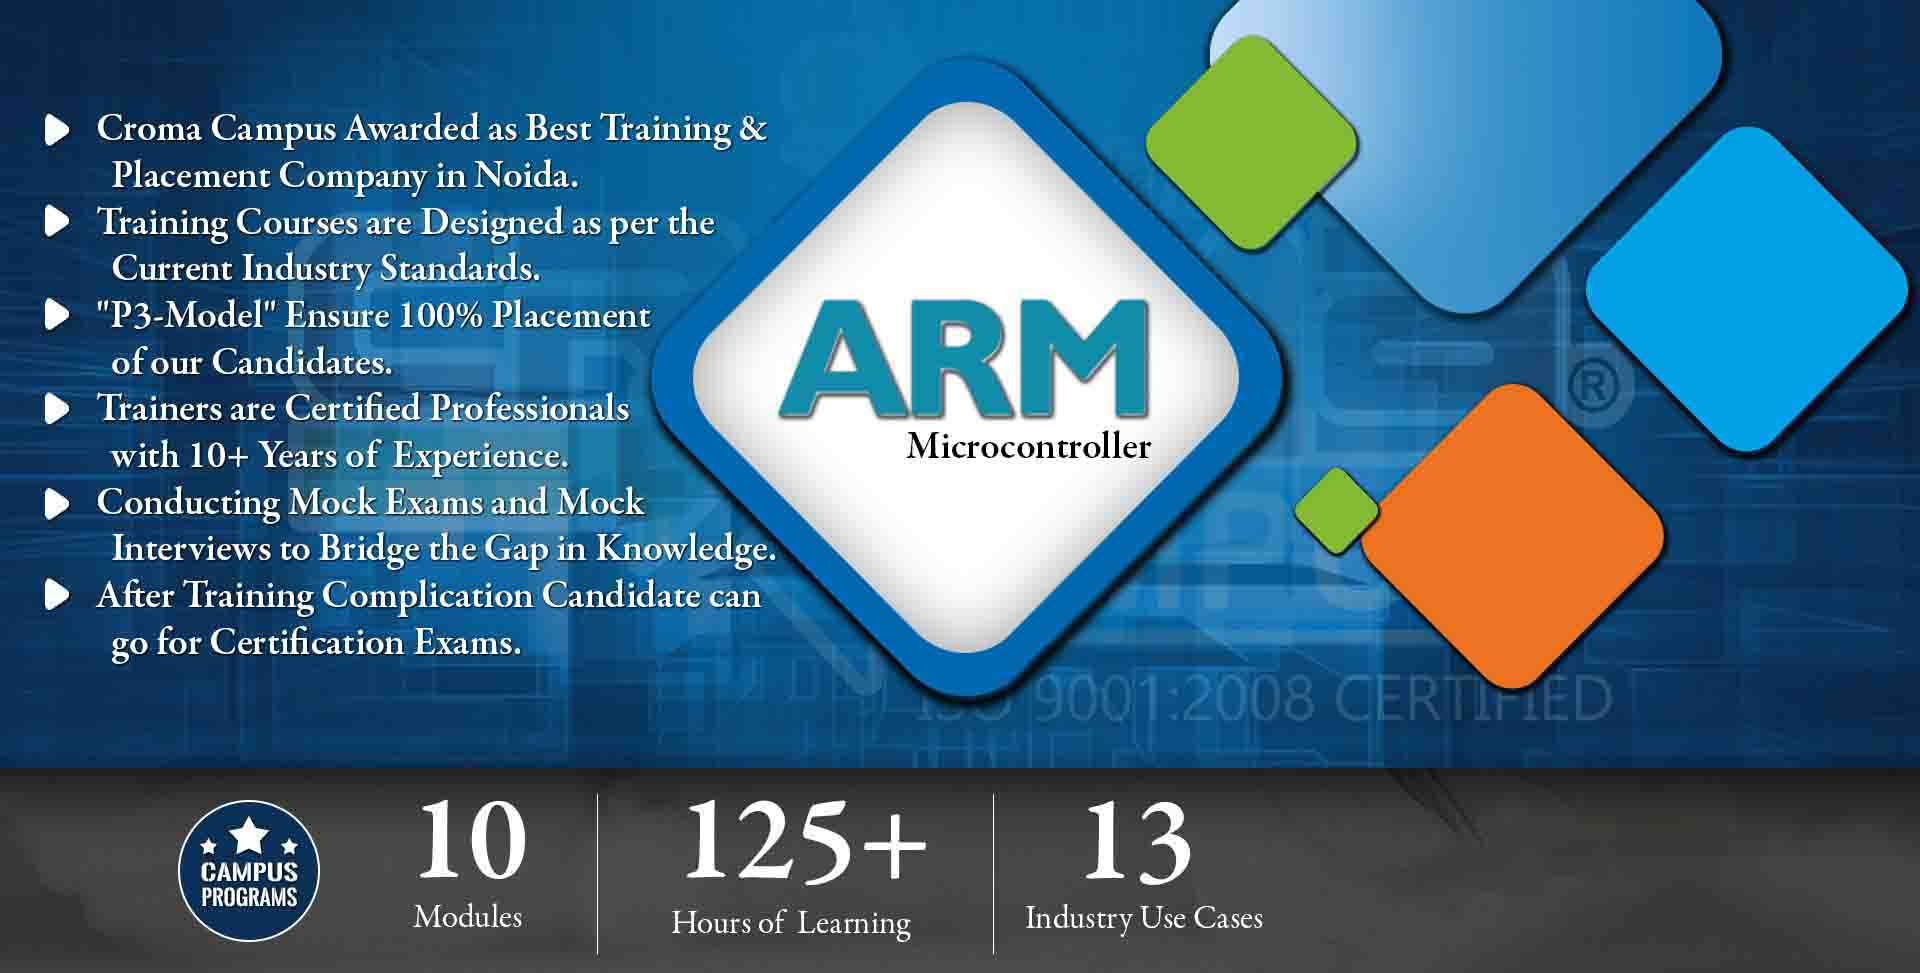 ARM Microcontroller Training in Noida- Croma Campus